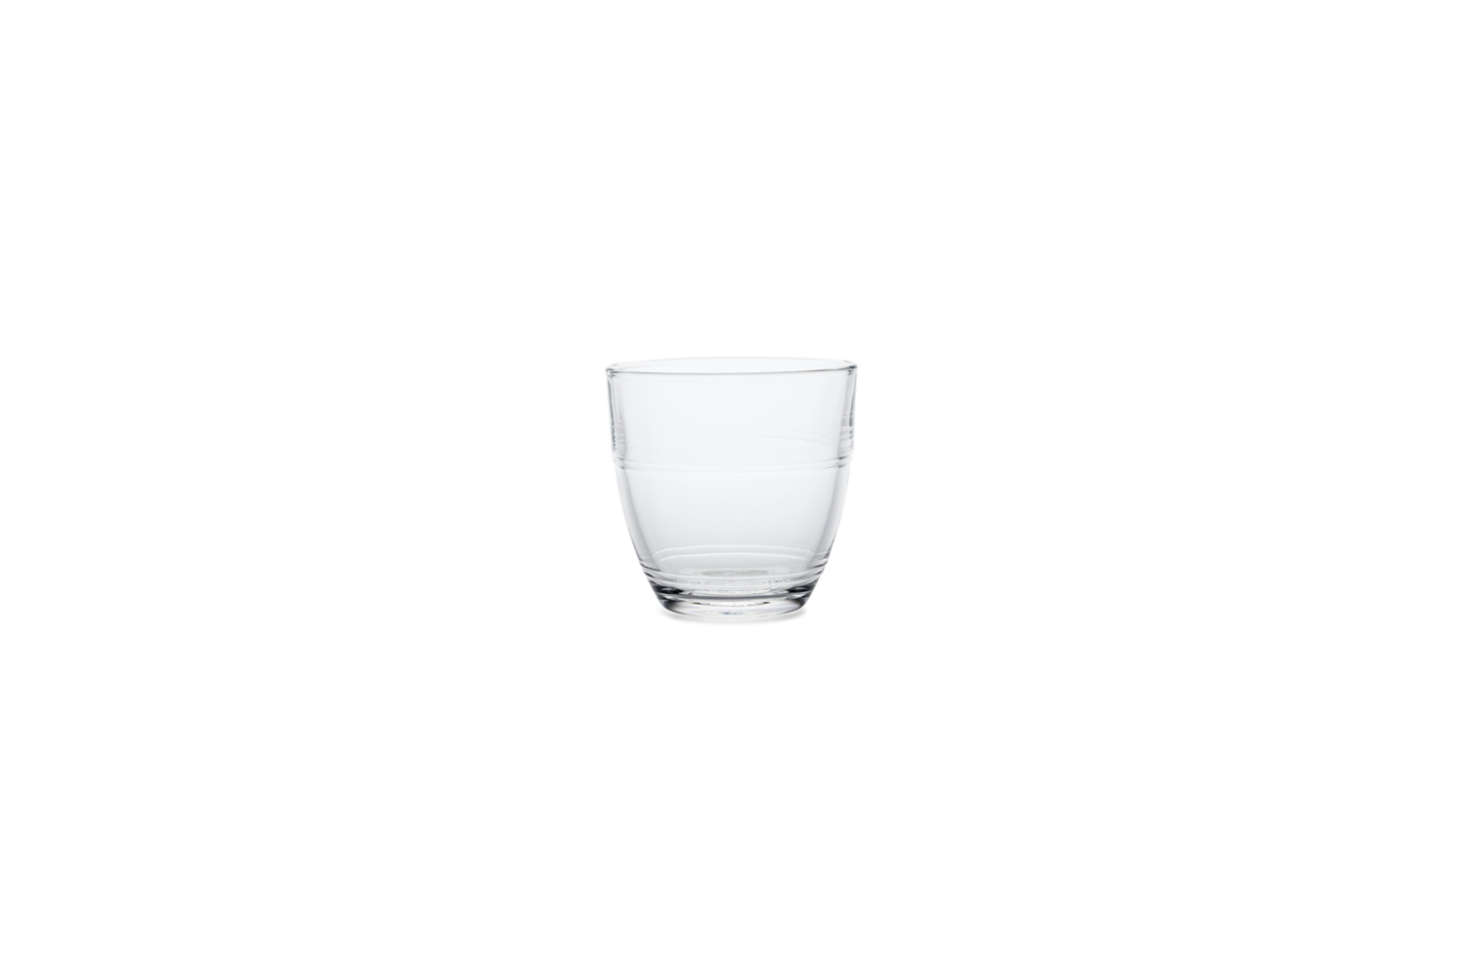 Made in France (and virtually indestructible), the Gigogne Glass by Duralex is available as a set of src=